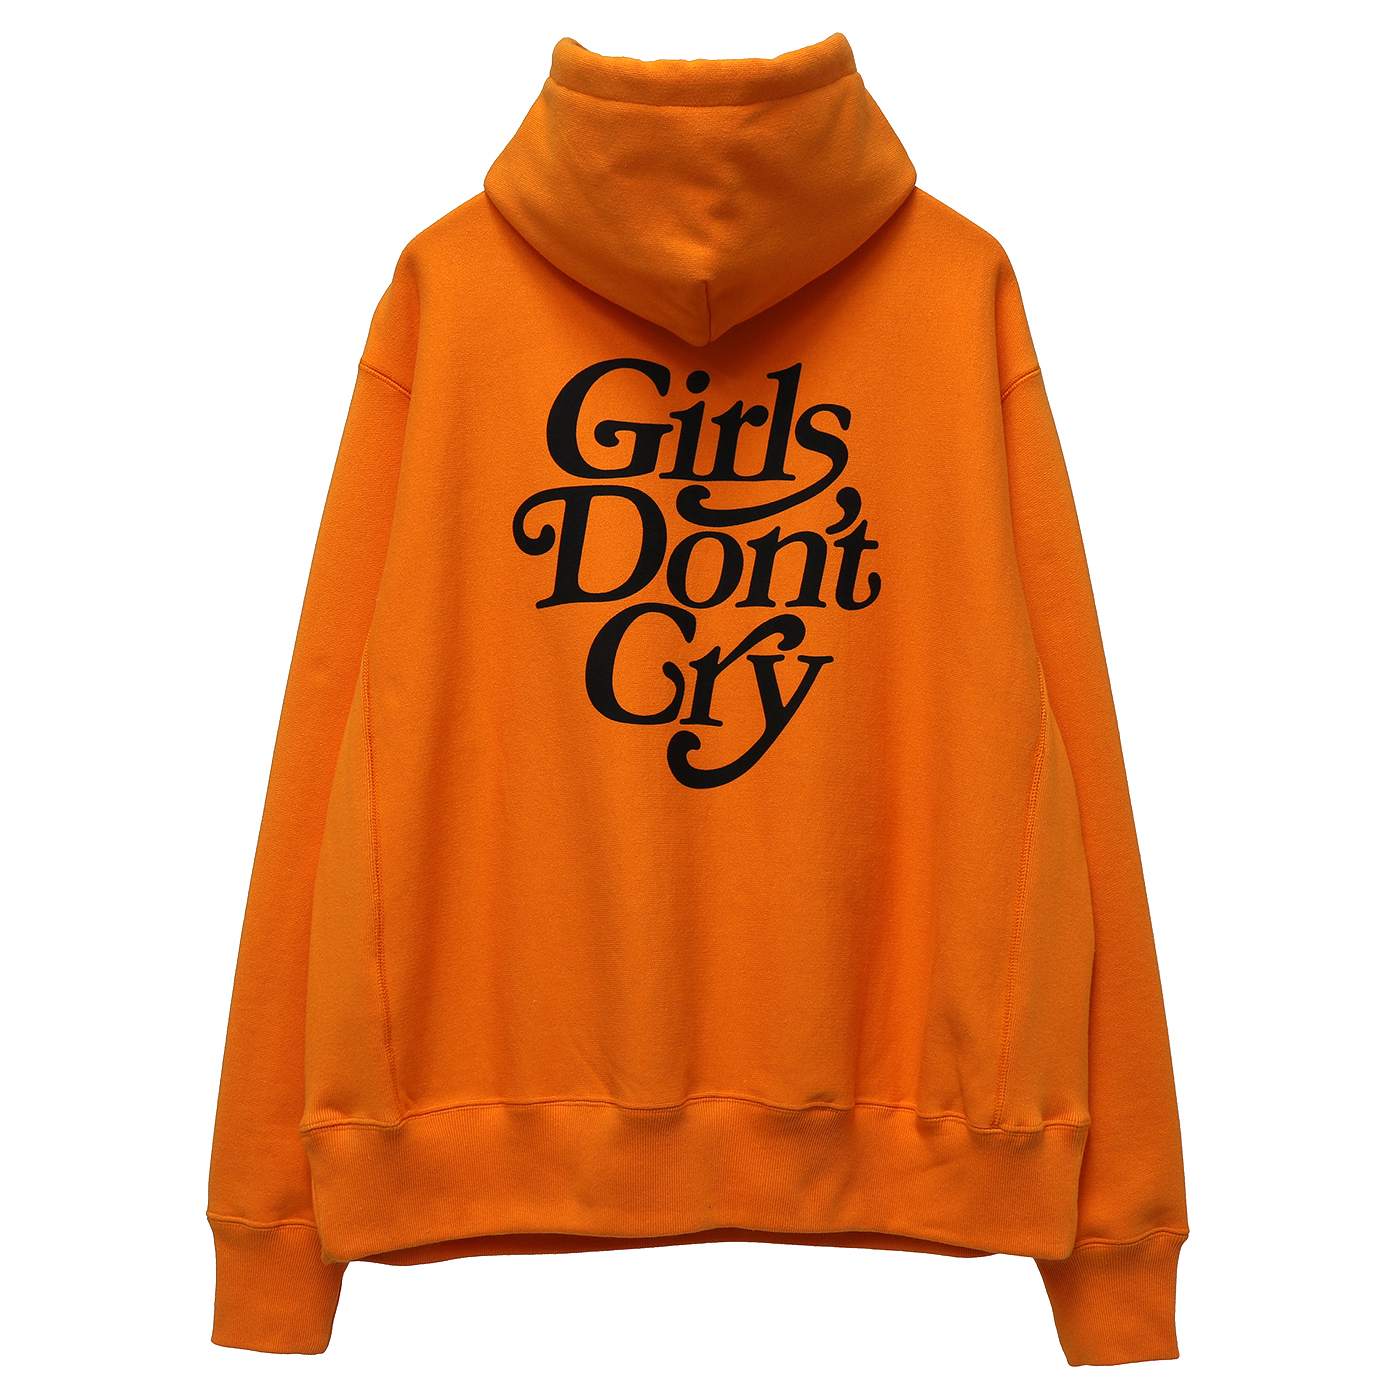 readymade-girls-dont-cry-collaboration-release-20181222-at-gr8